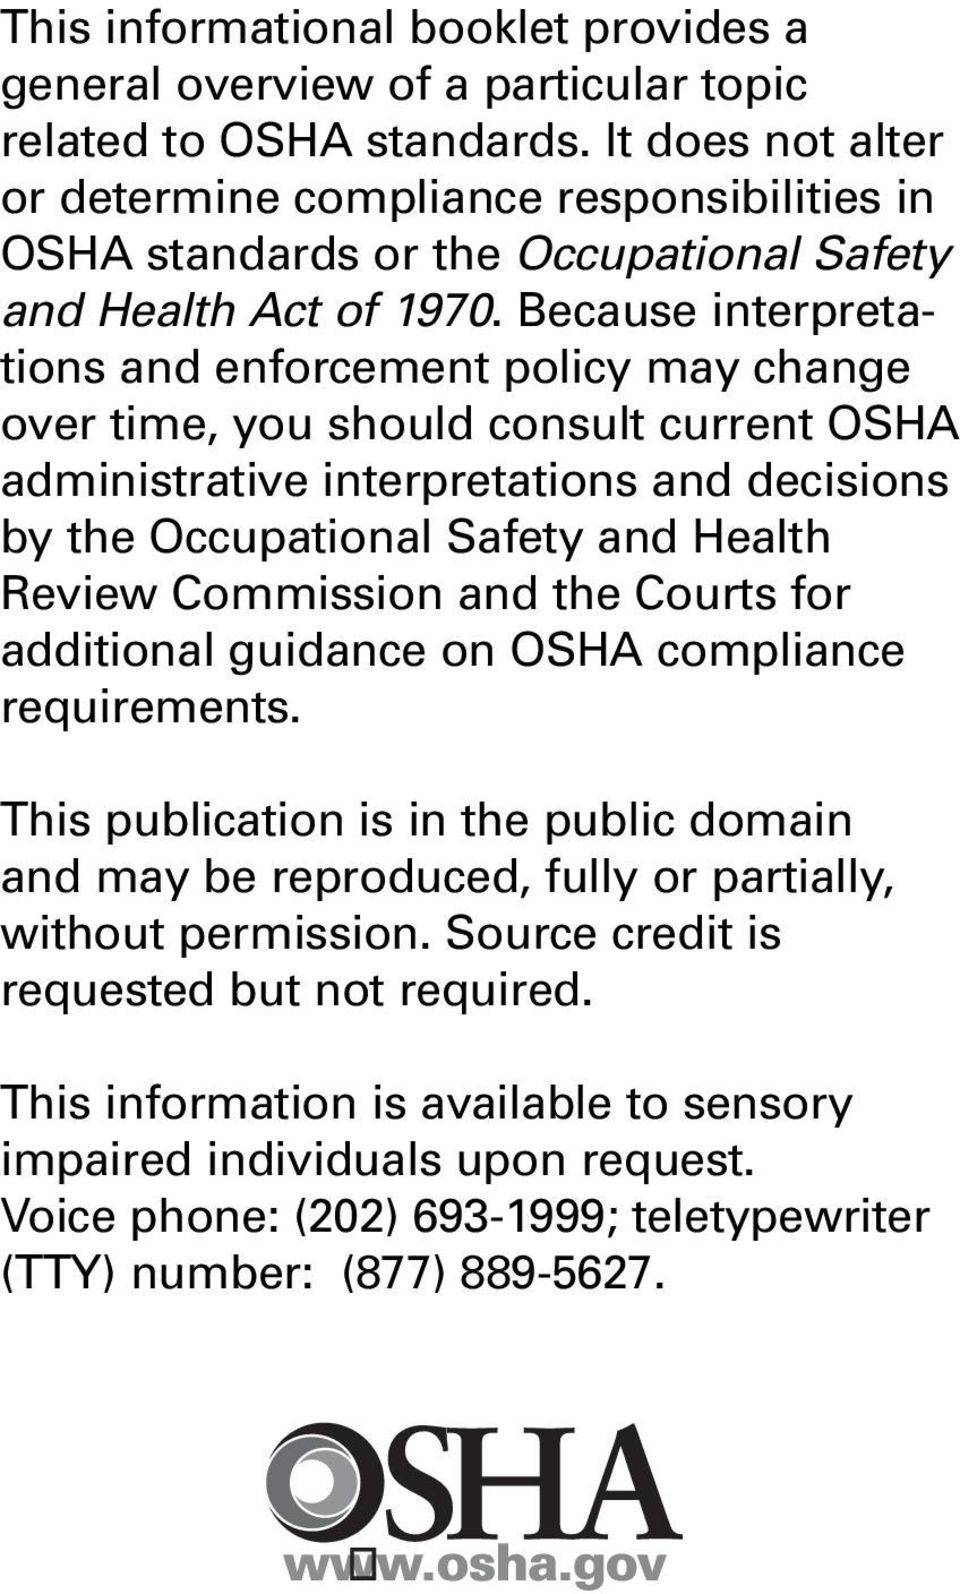 Because interpretations and enforcement policy may change over time, you should consult current OSHA administrative interpretations and decisions by the Occupational Safety and Health Review